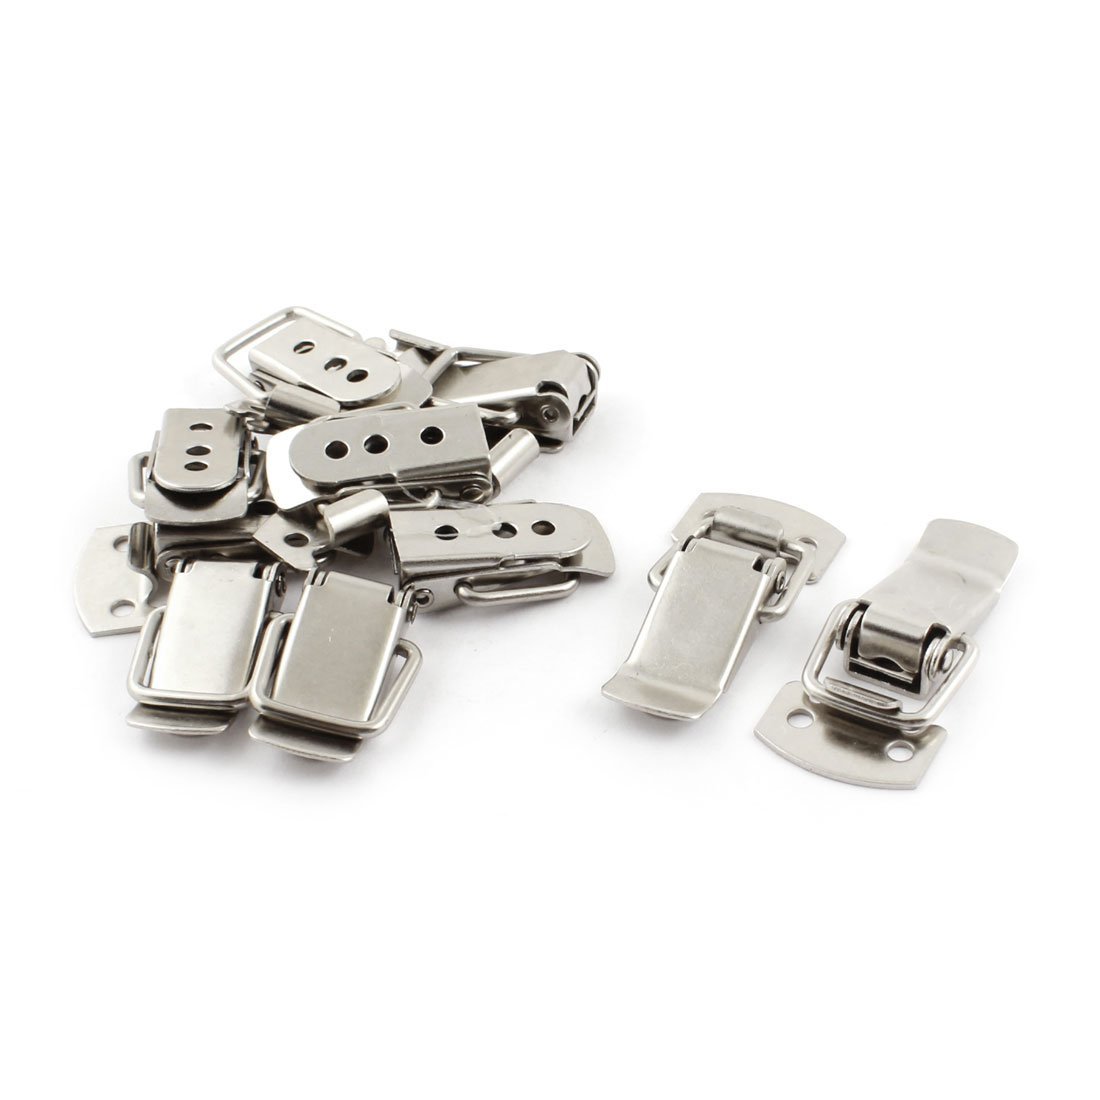 10-Piece Uxcell a14081300ux0021 30mm Home Cabinet Security Stainless Steel Toggle Latch Catch